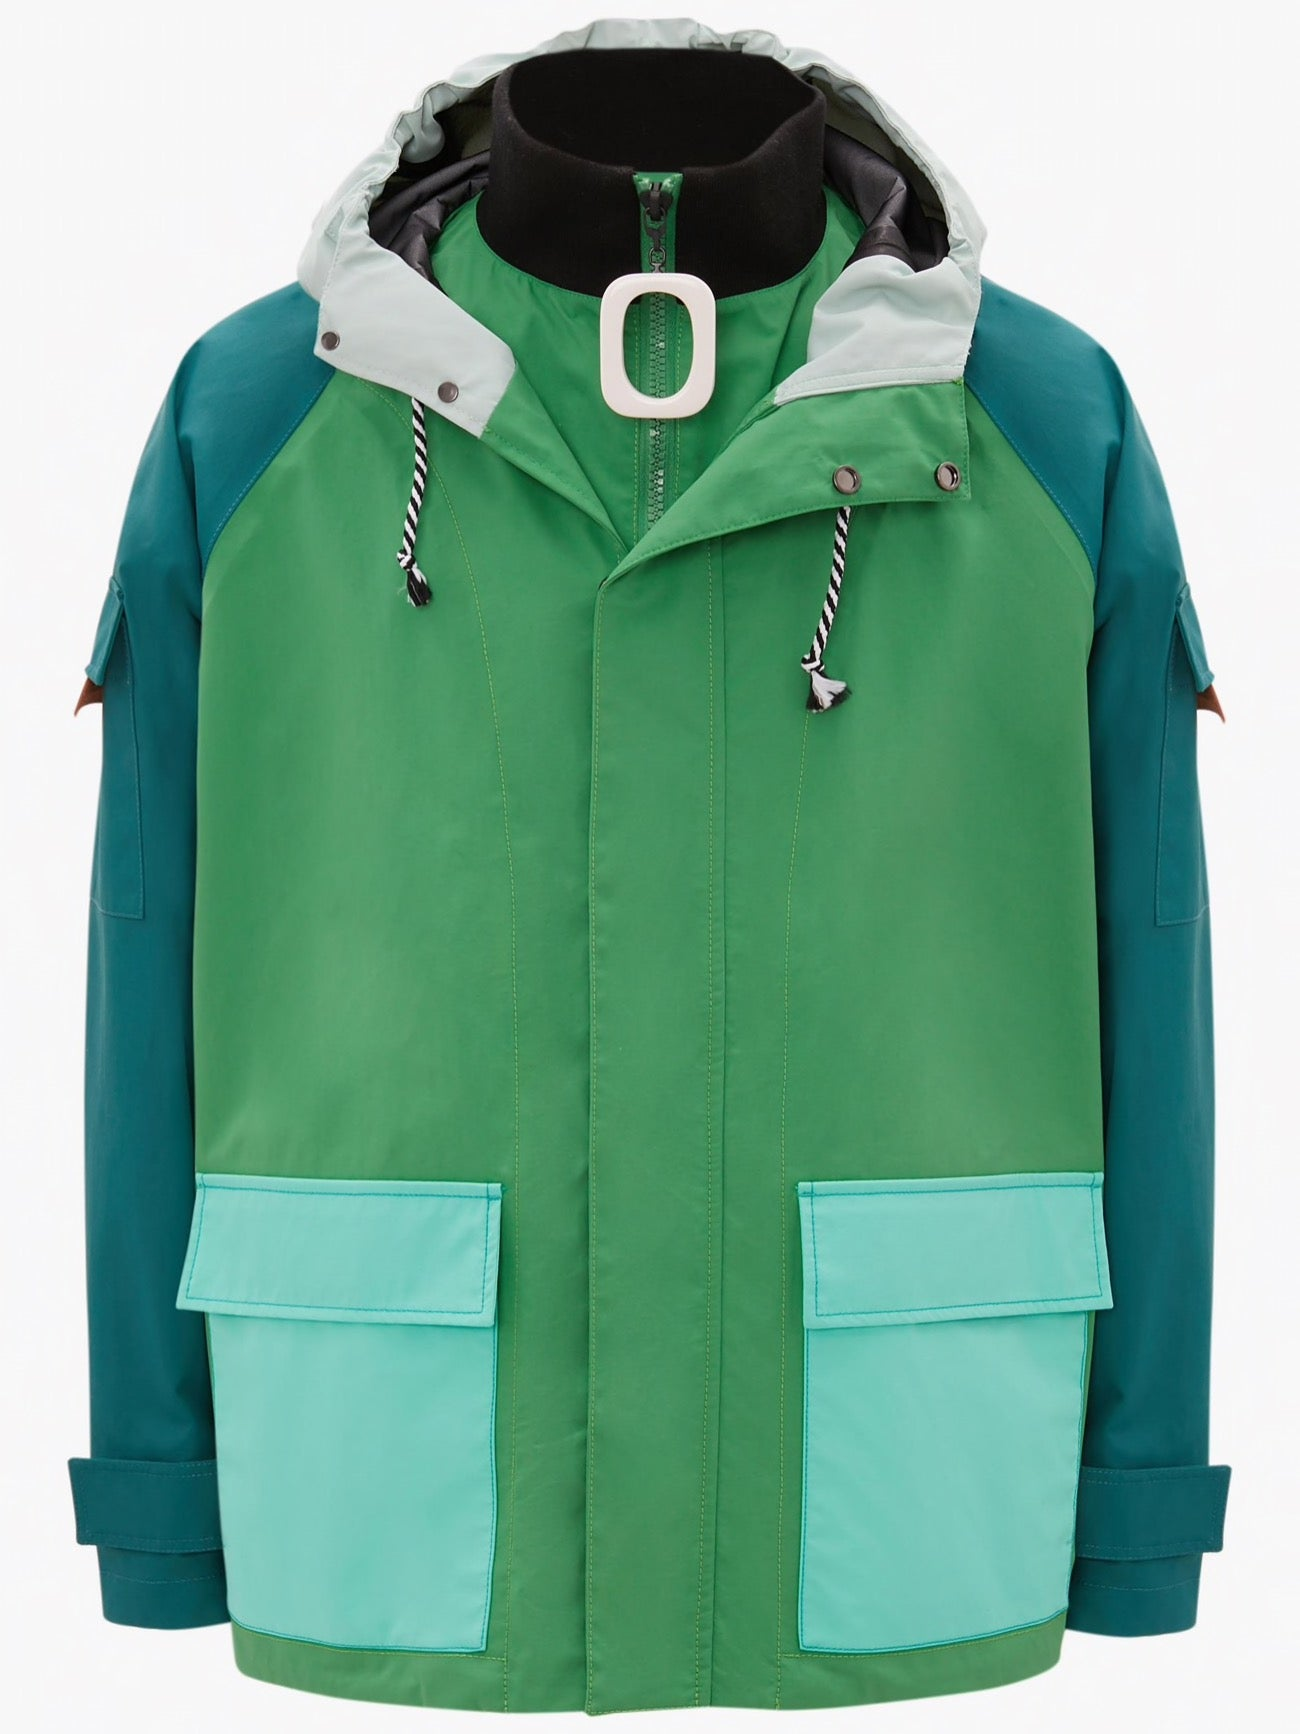 JWA PULLER HOODED JACKET